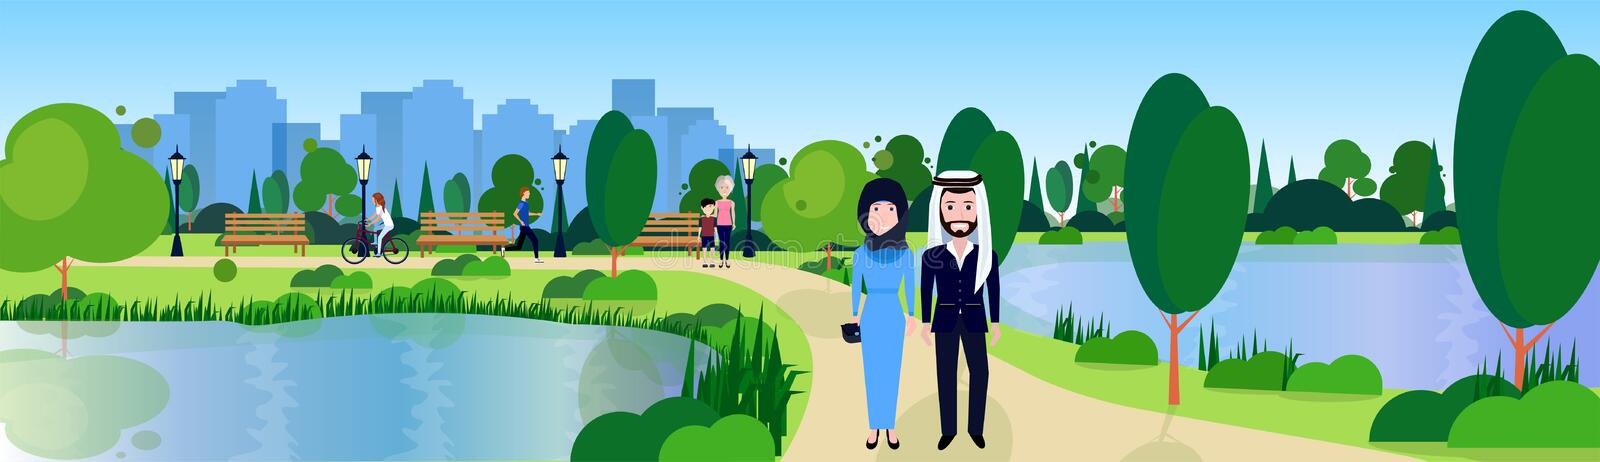 Public park couple arabic man woman relax wooden bench outdoors river green lawn trees on city buildings template. Background flat banner vector illustration royalty free illustration